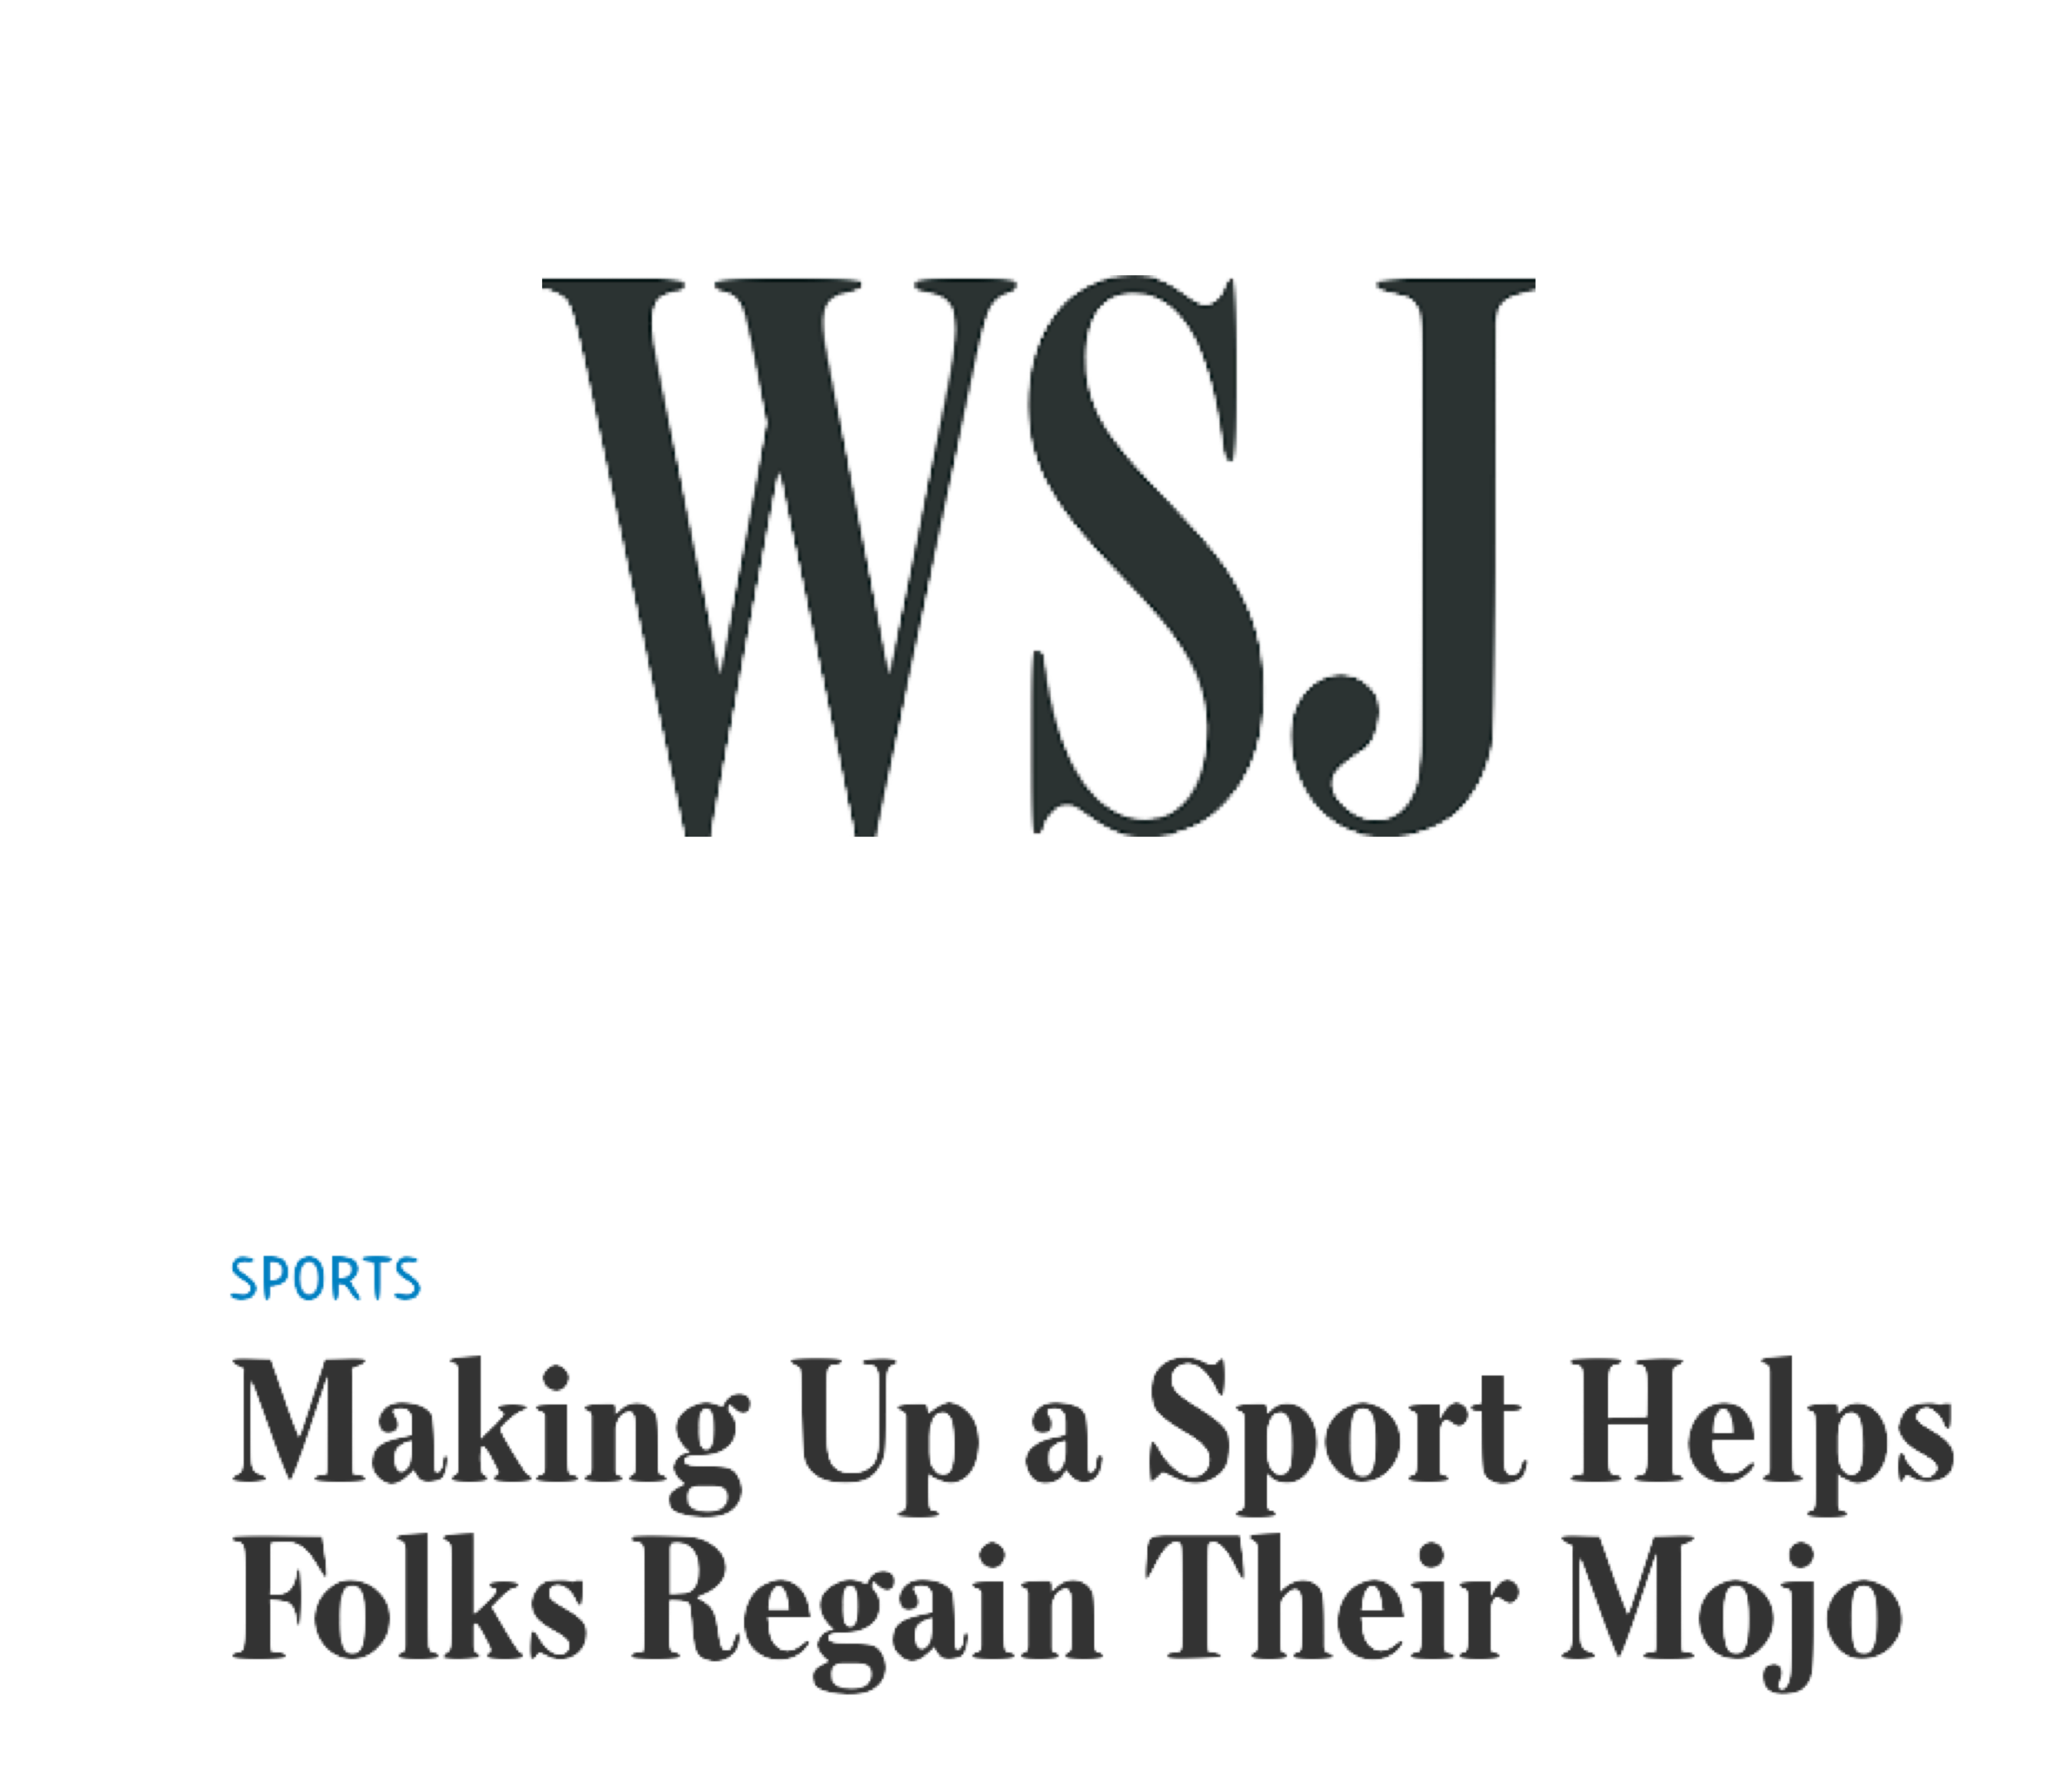 wsj square logo with title.png